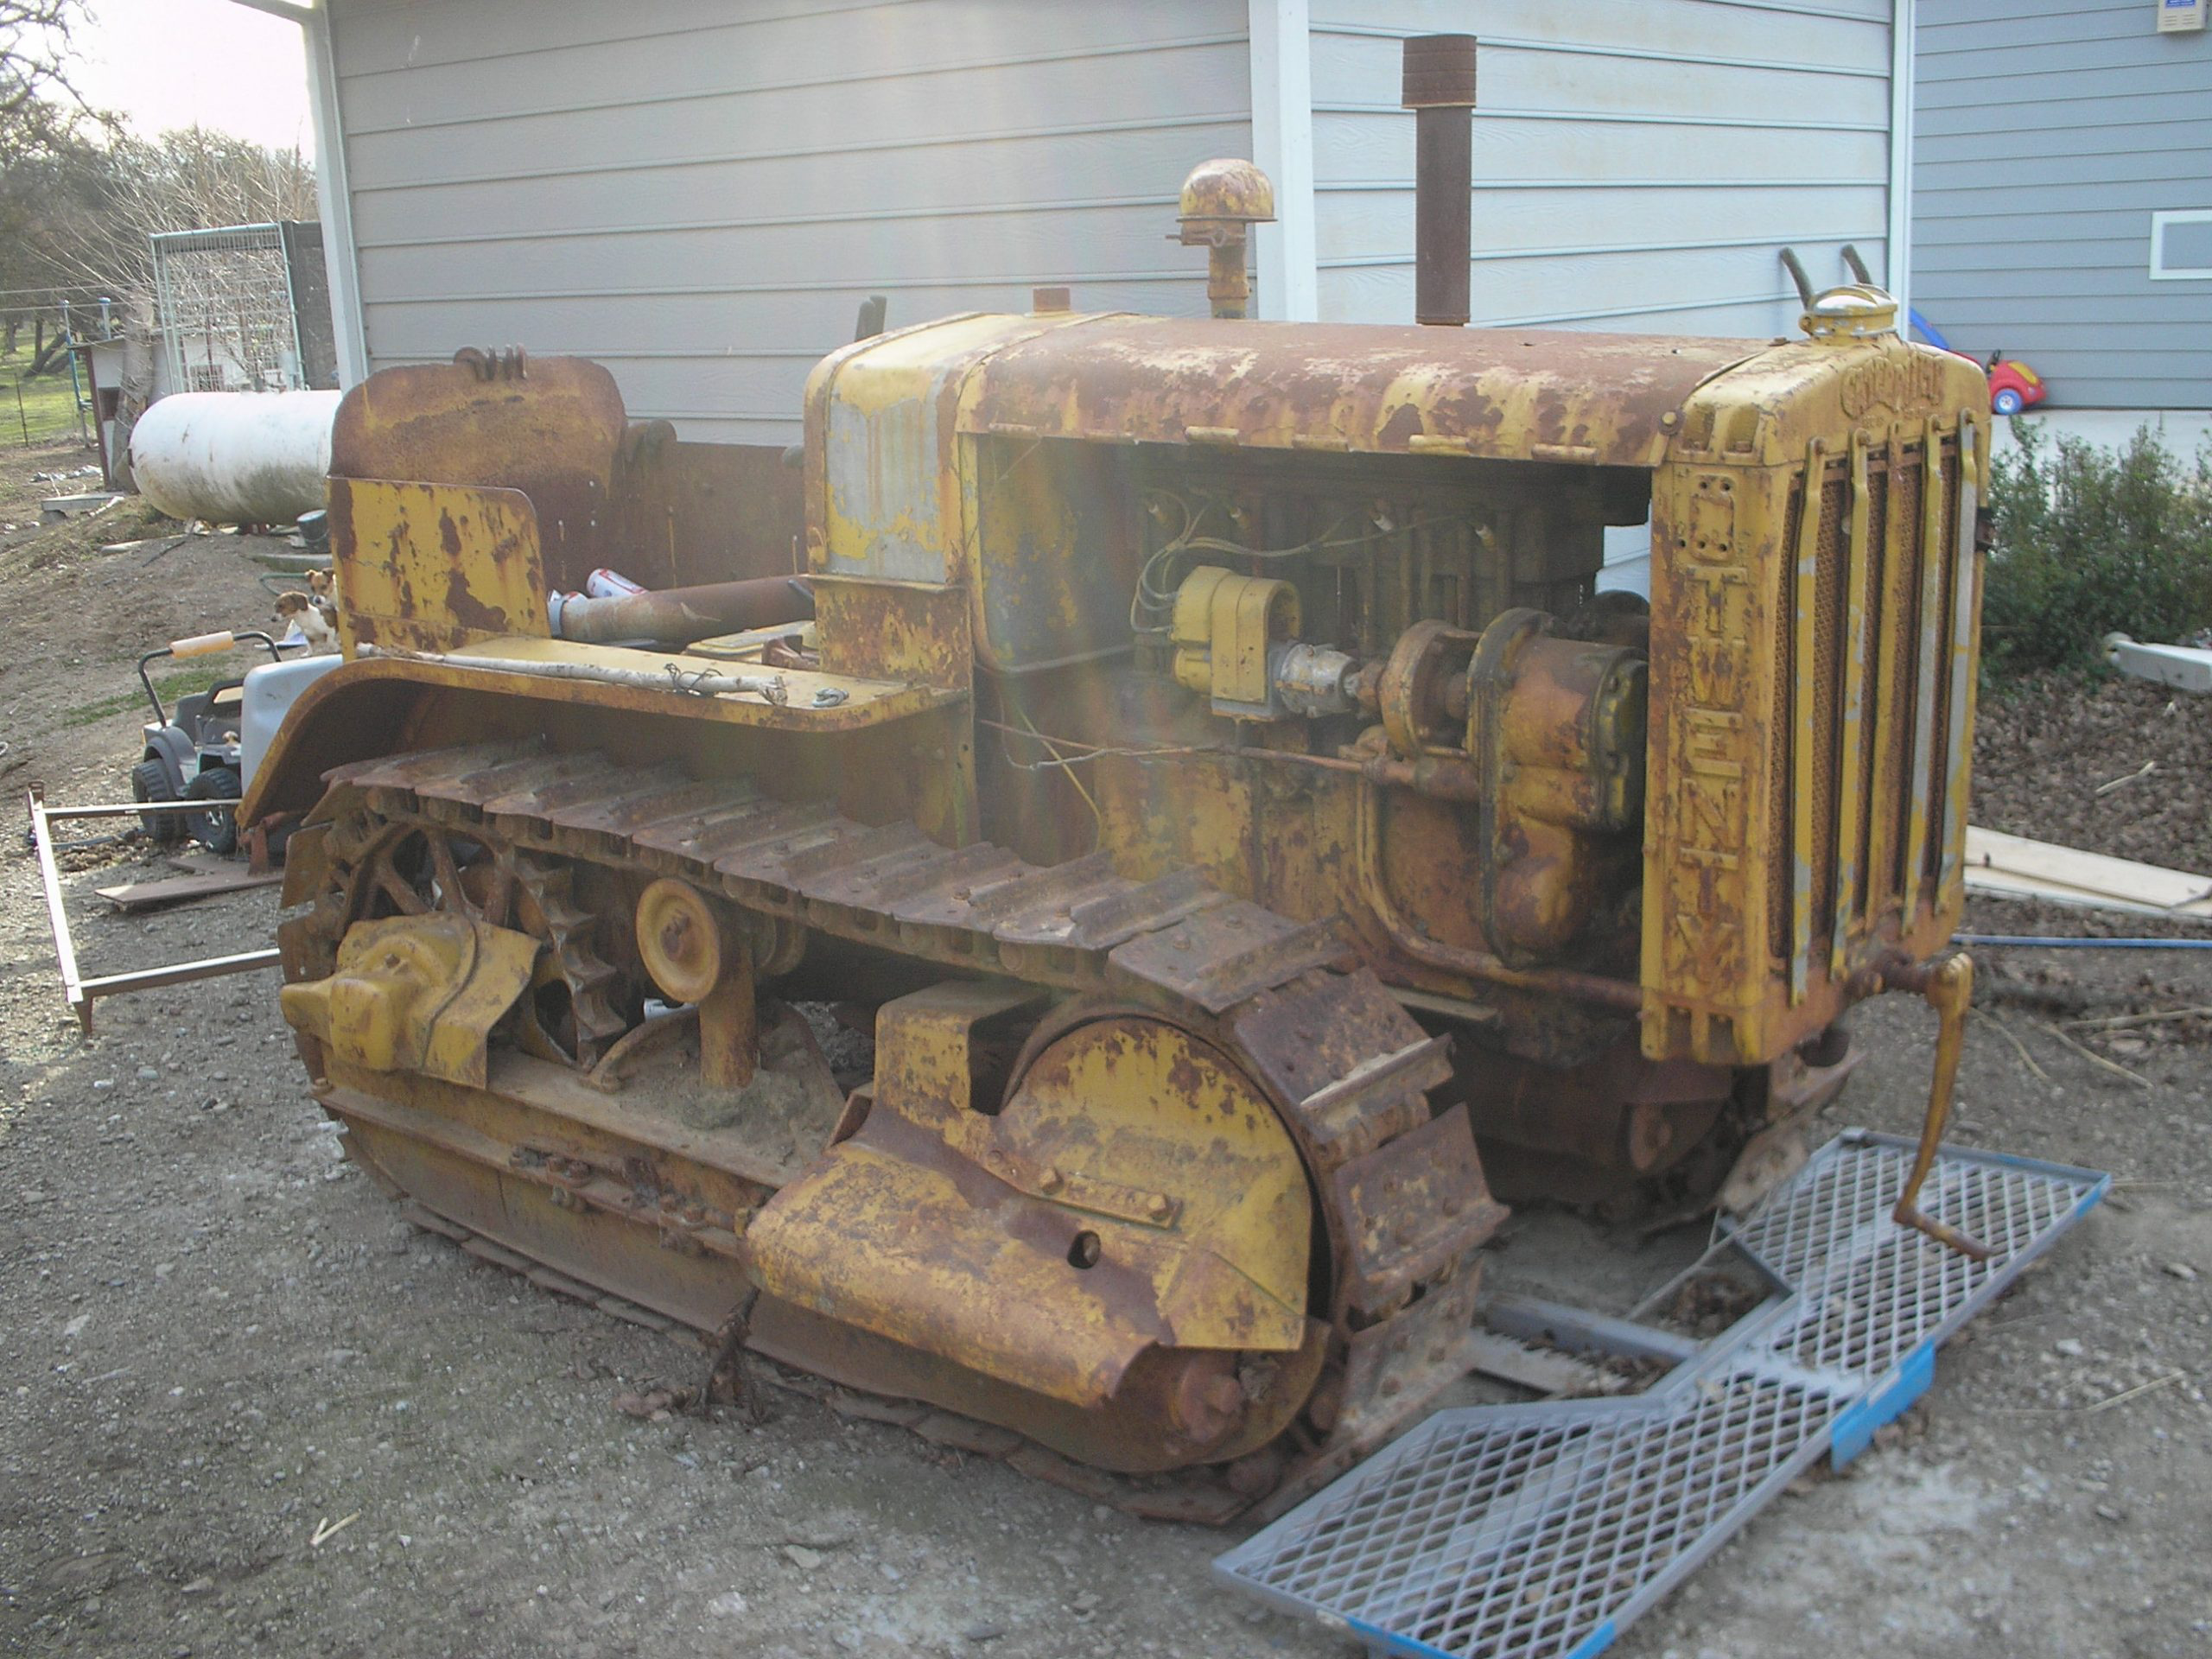 Caterpillar Twenty tractor before restoration